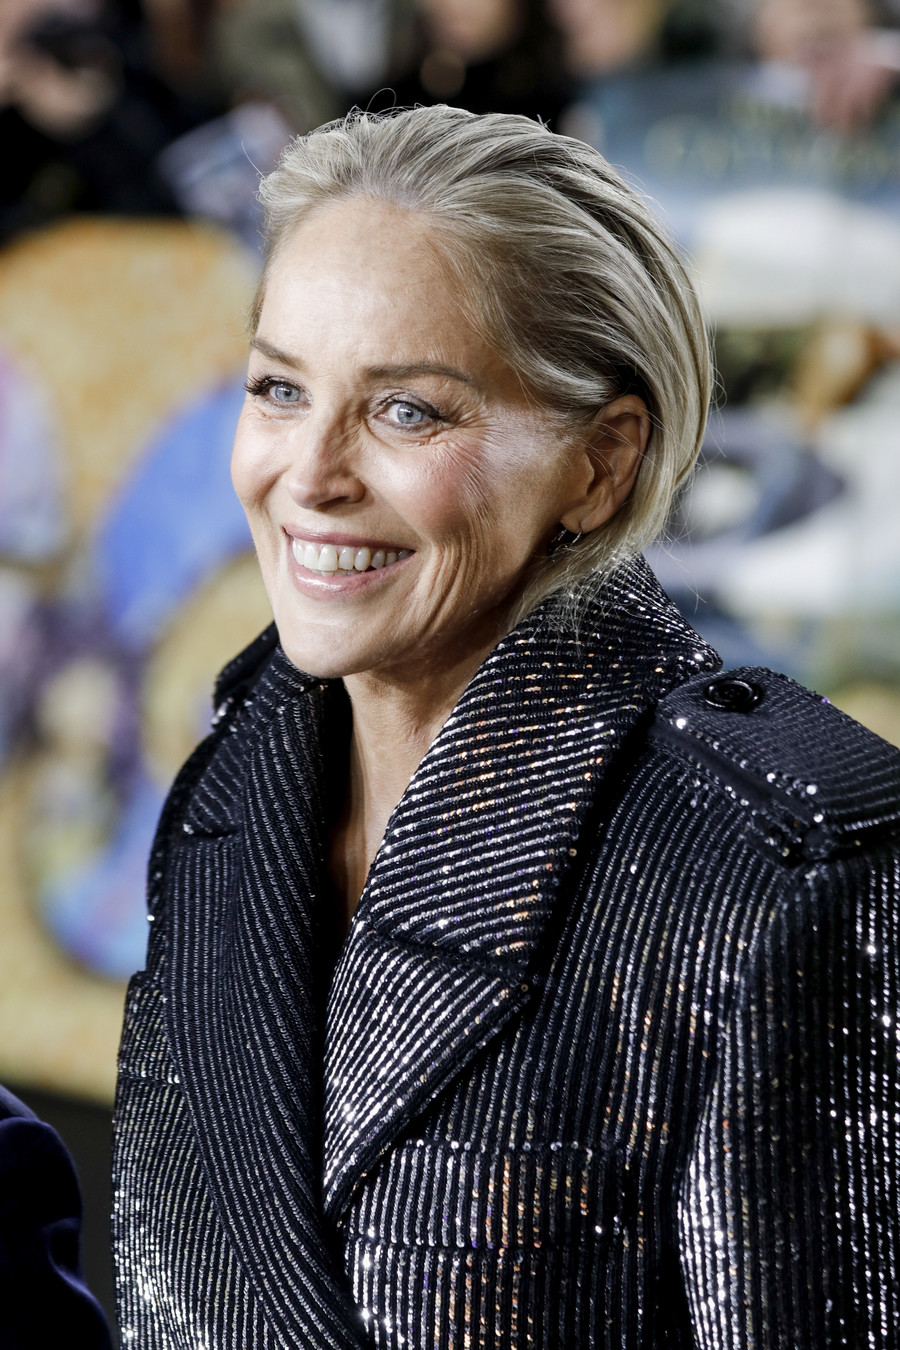 Sharon Stone dziś / Getty Images / Isa Foltin